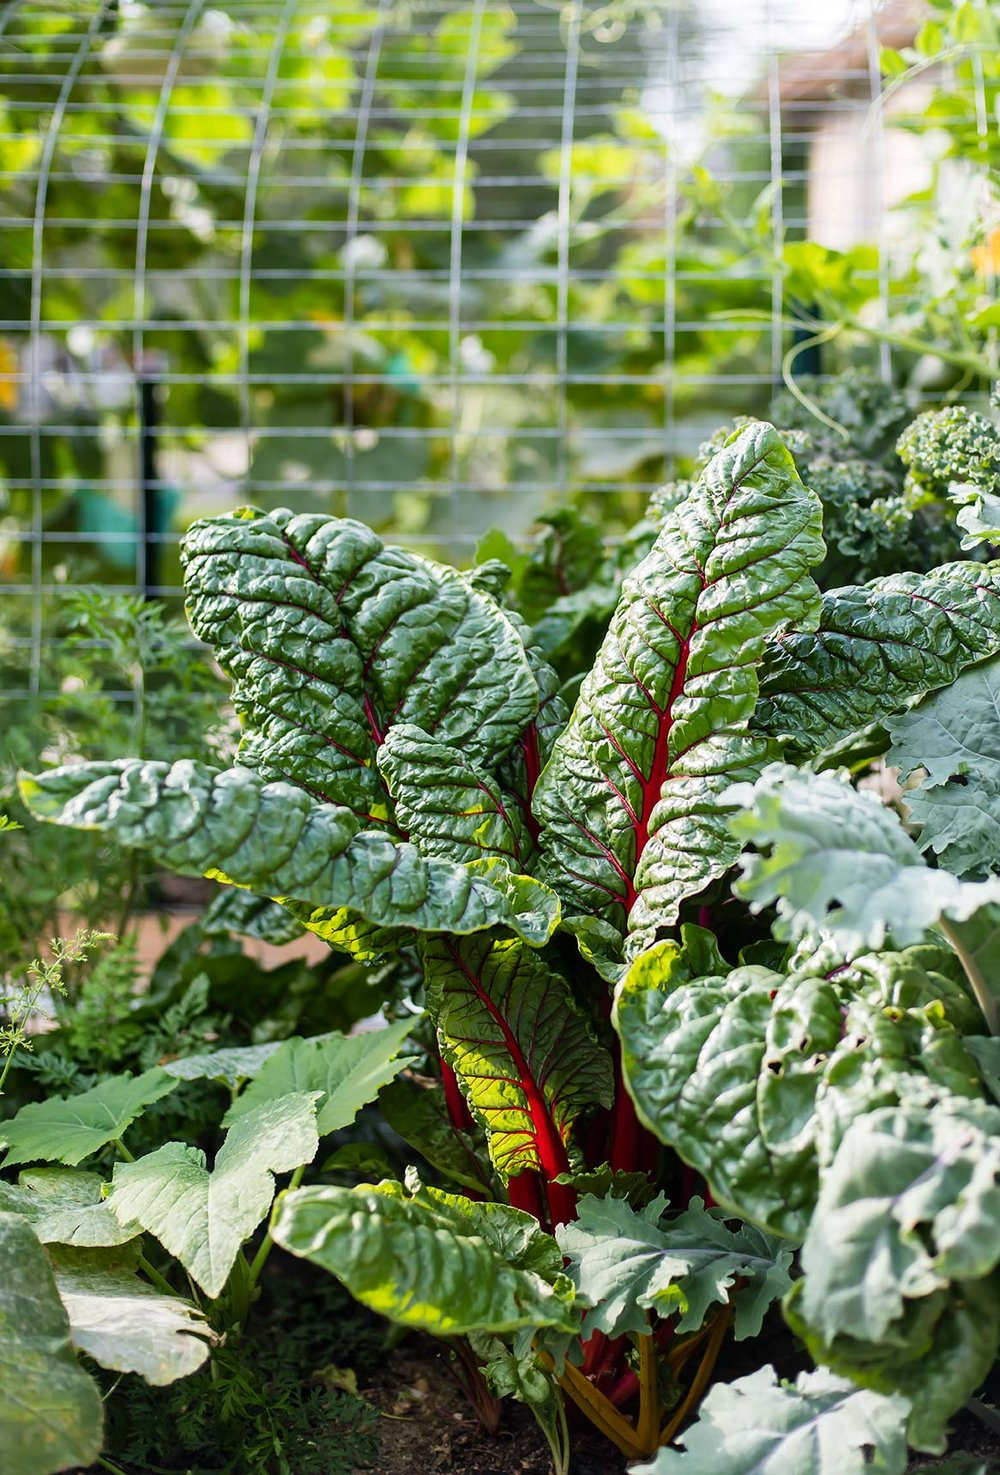 Swiss chard growing in garden bed